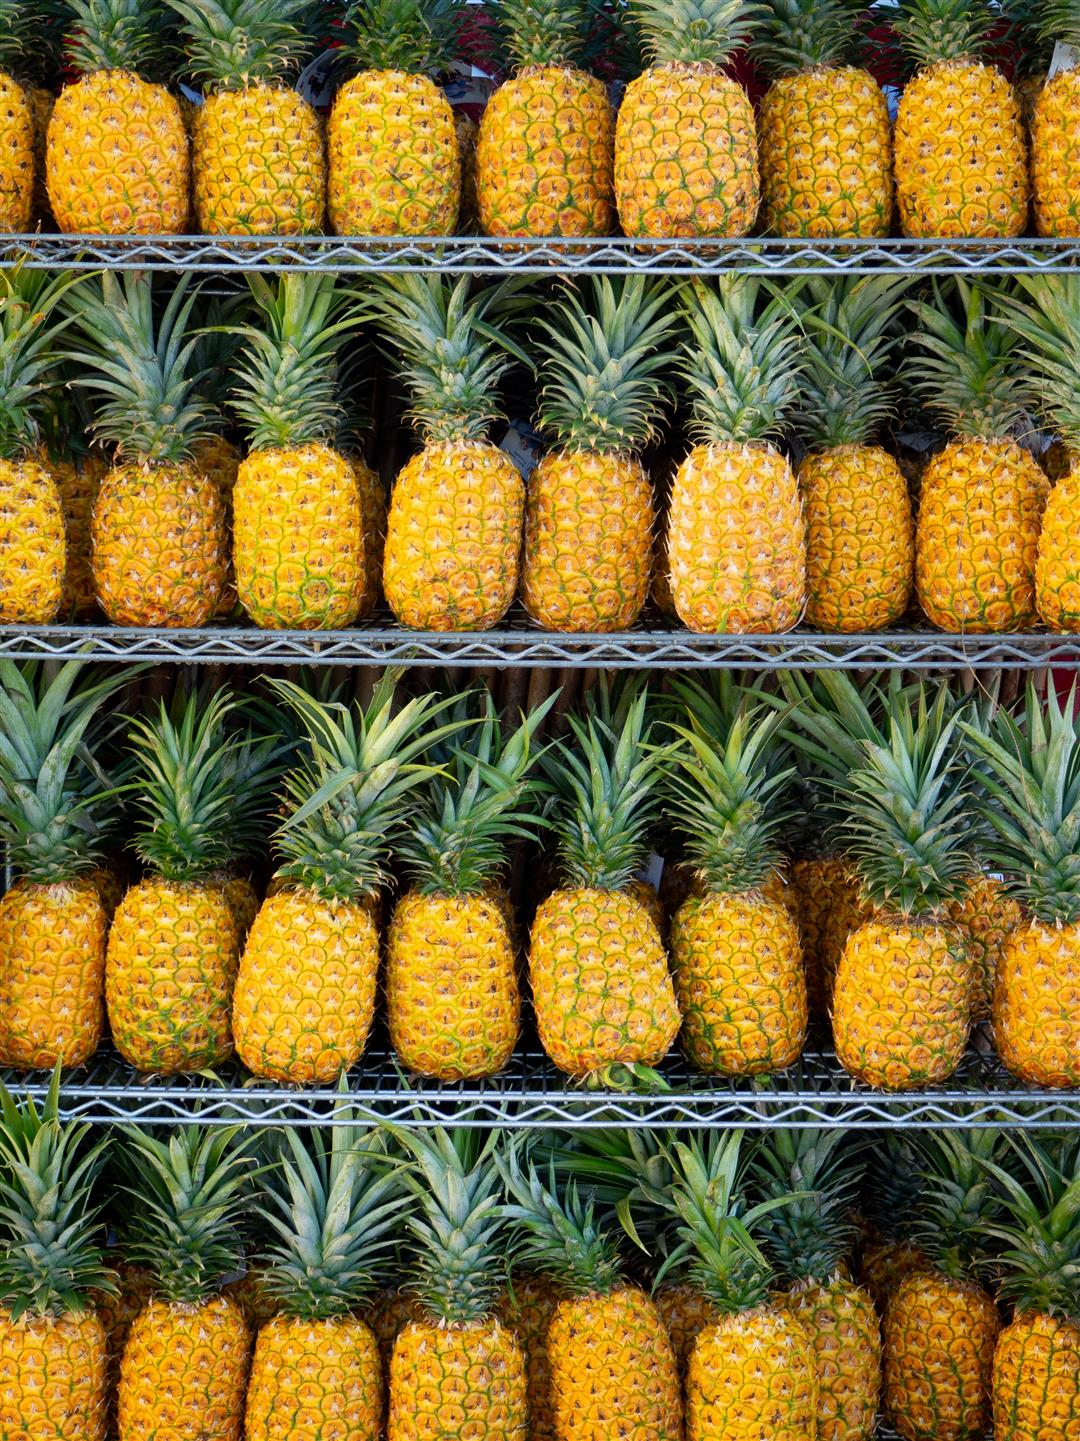 a couple lines of pineapples